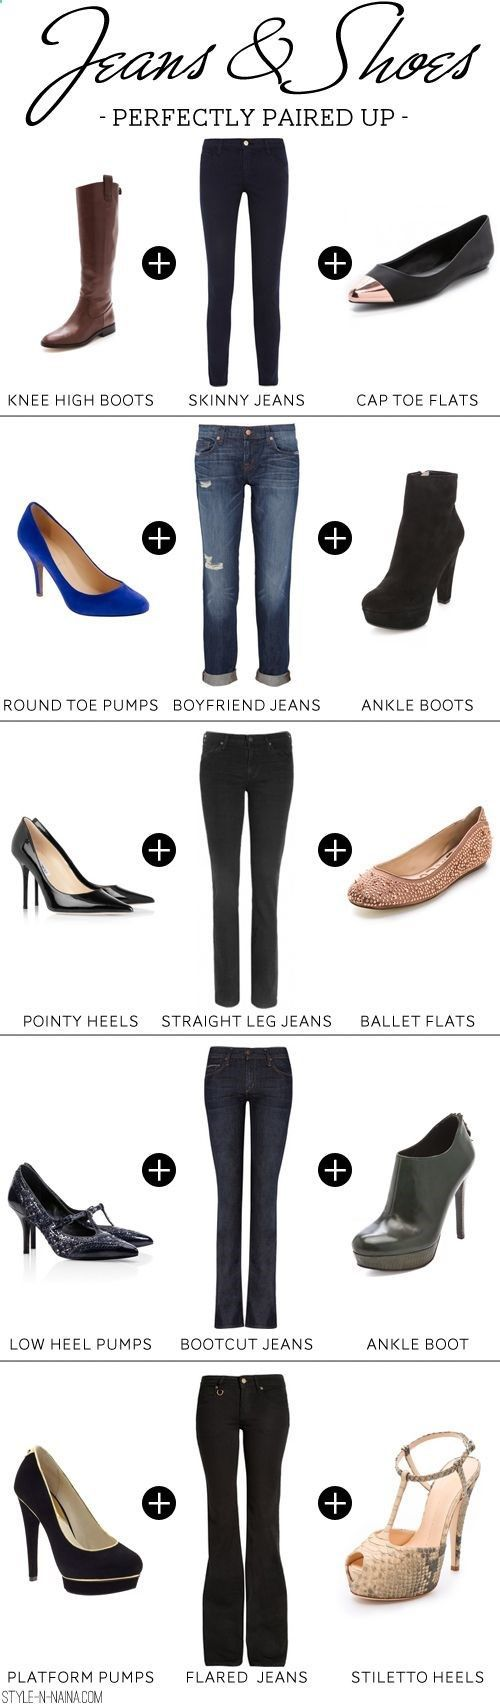 Jeans & Shoes Perfectly Paired Up